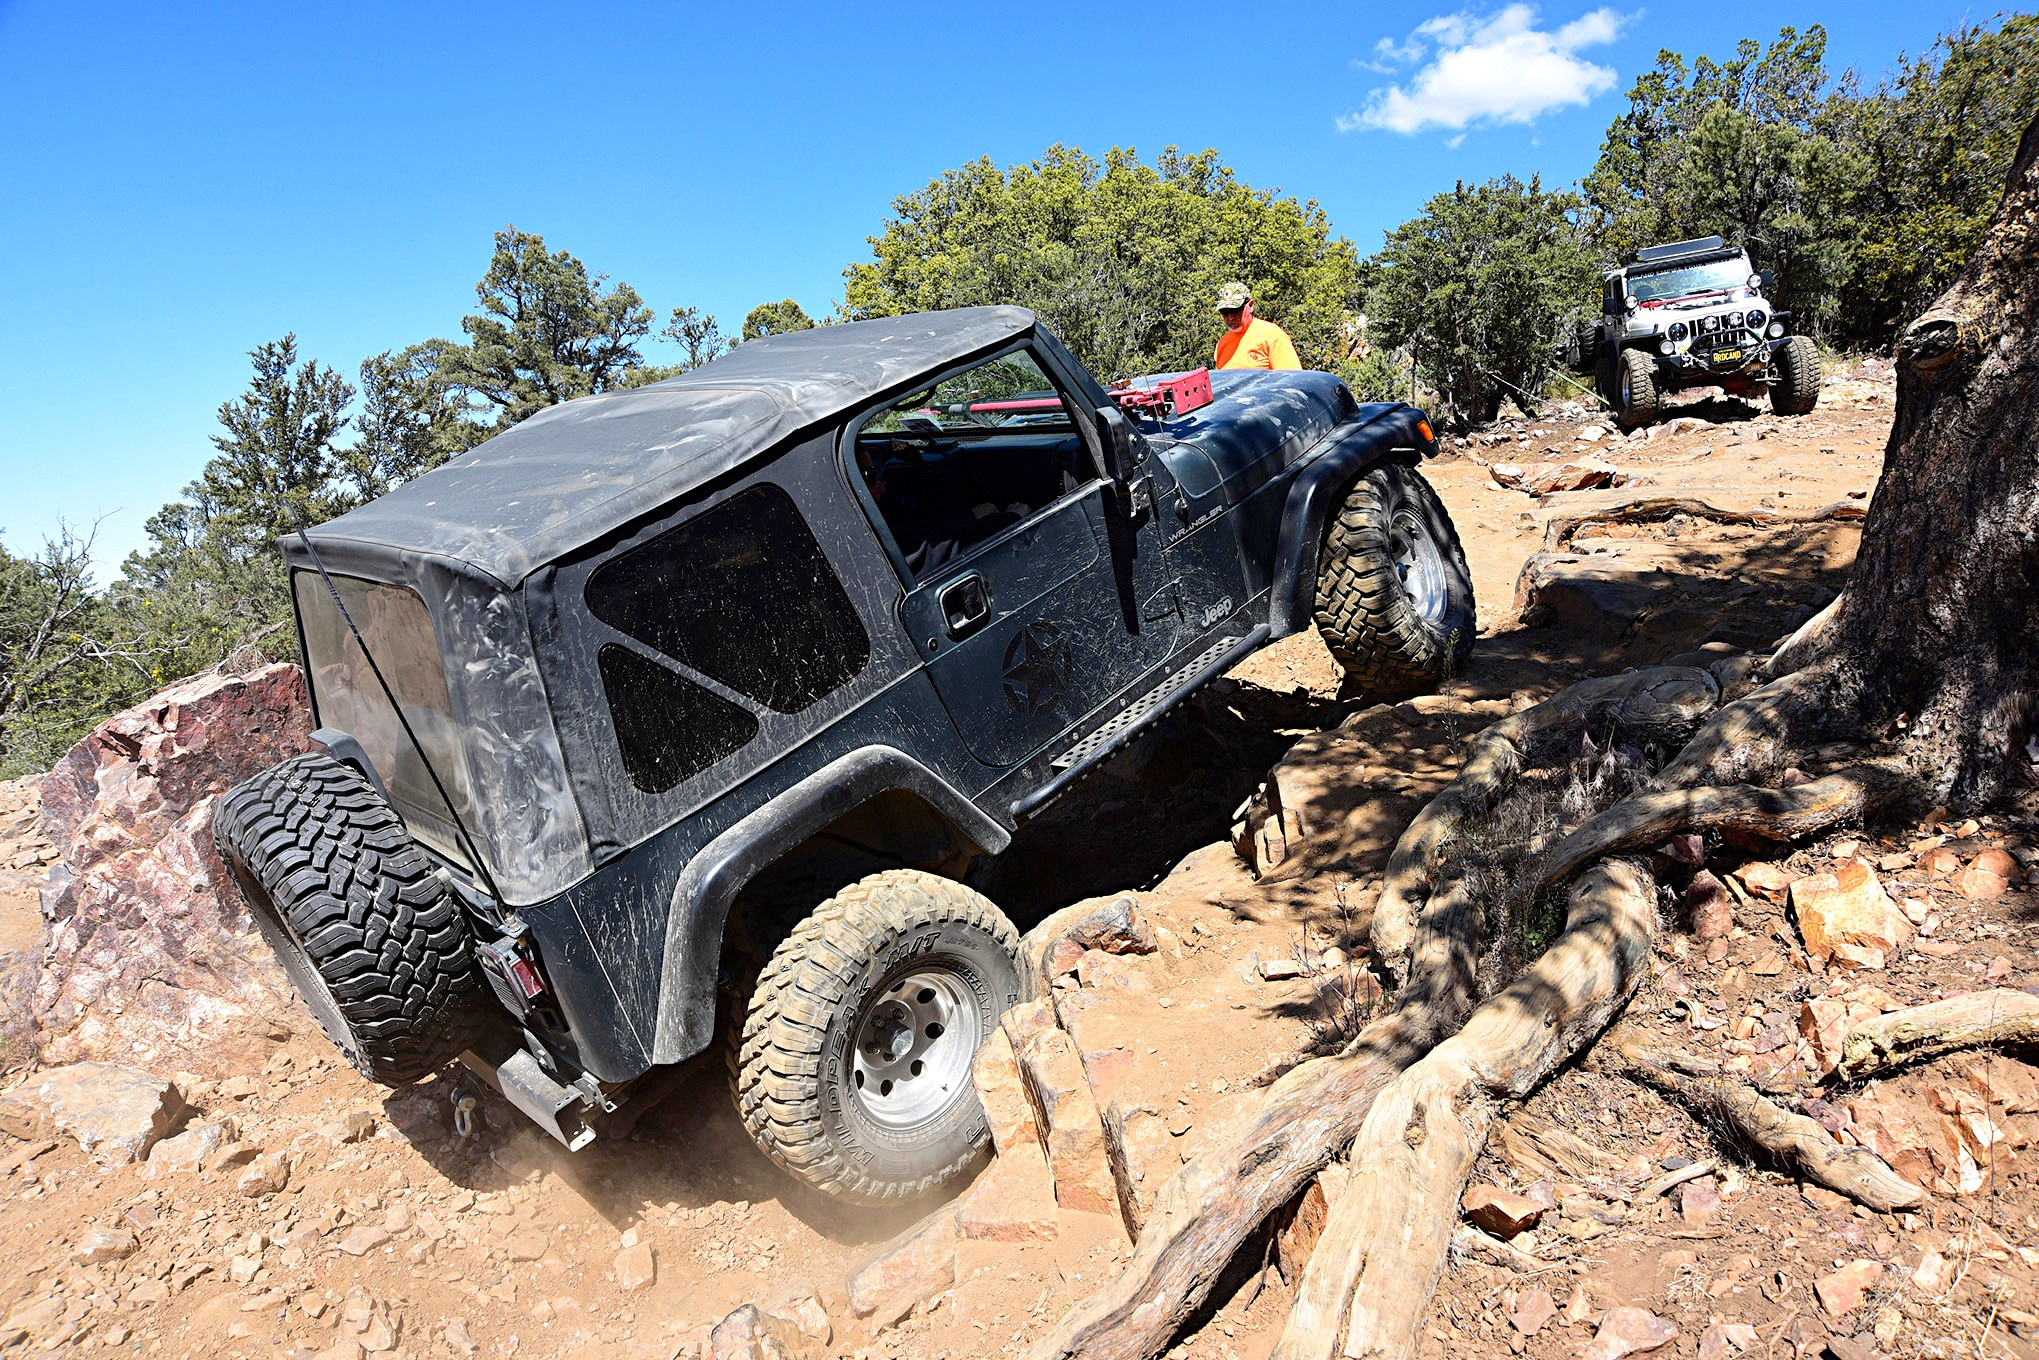 033 jeep event big bear forest fest 2019 inland empire